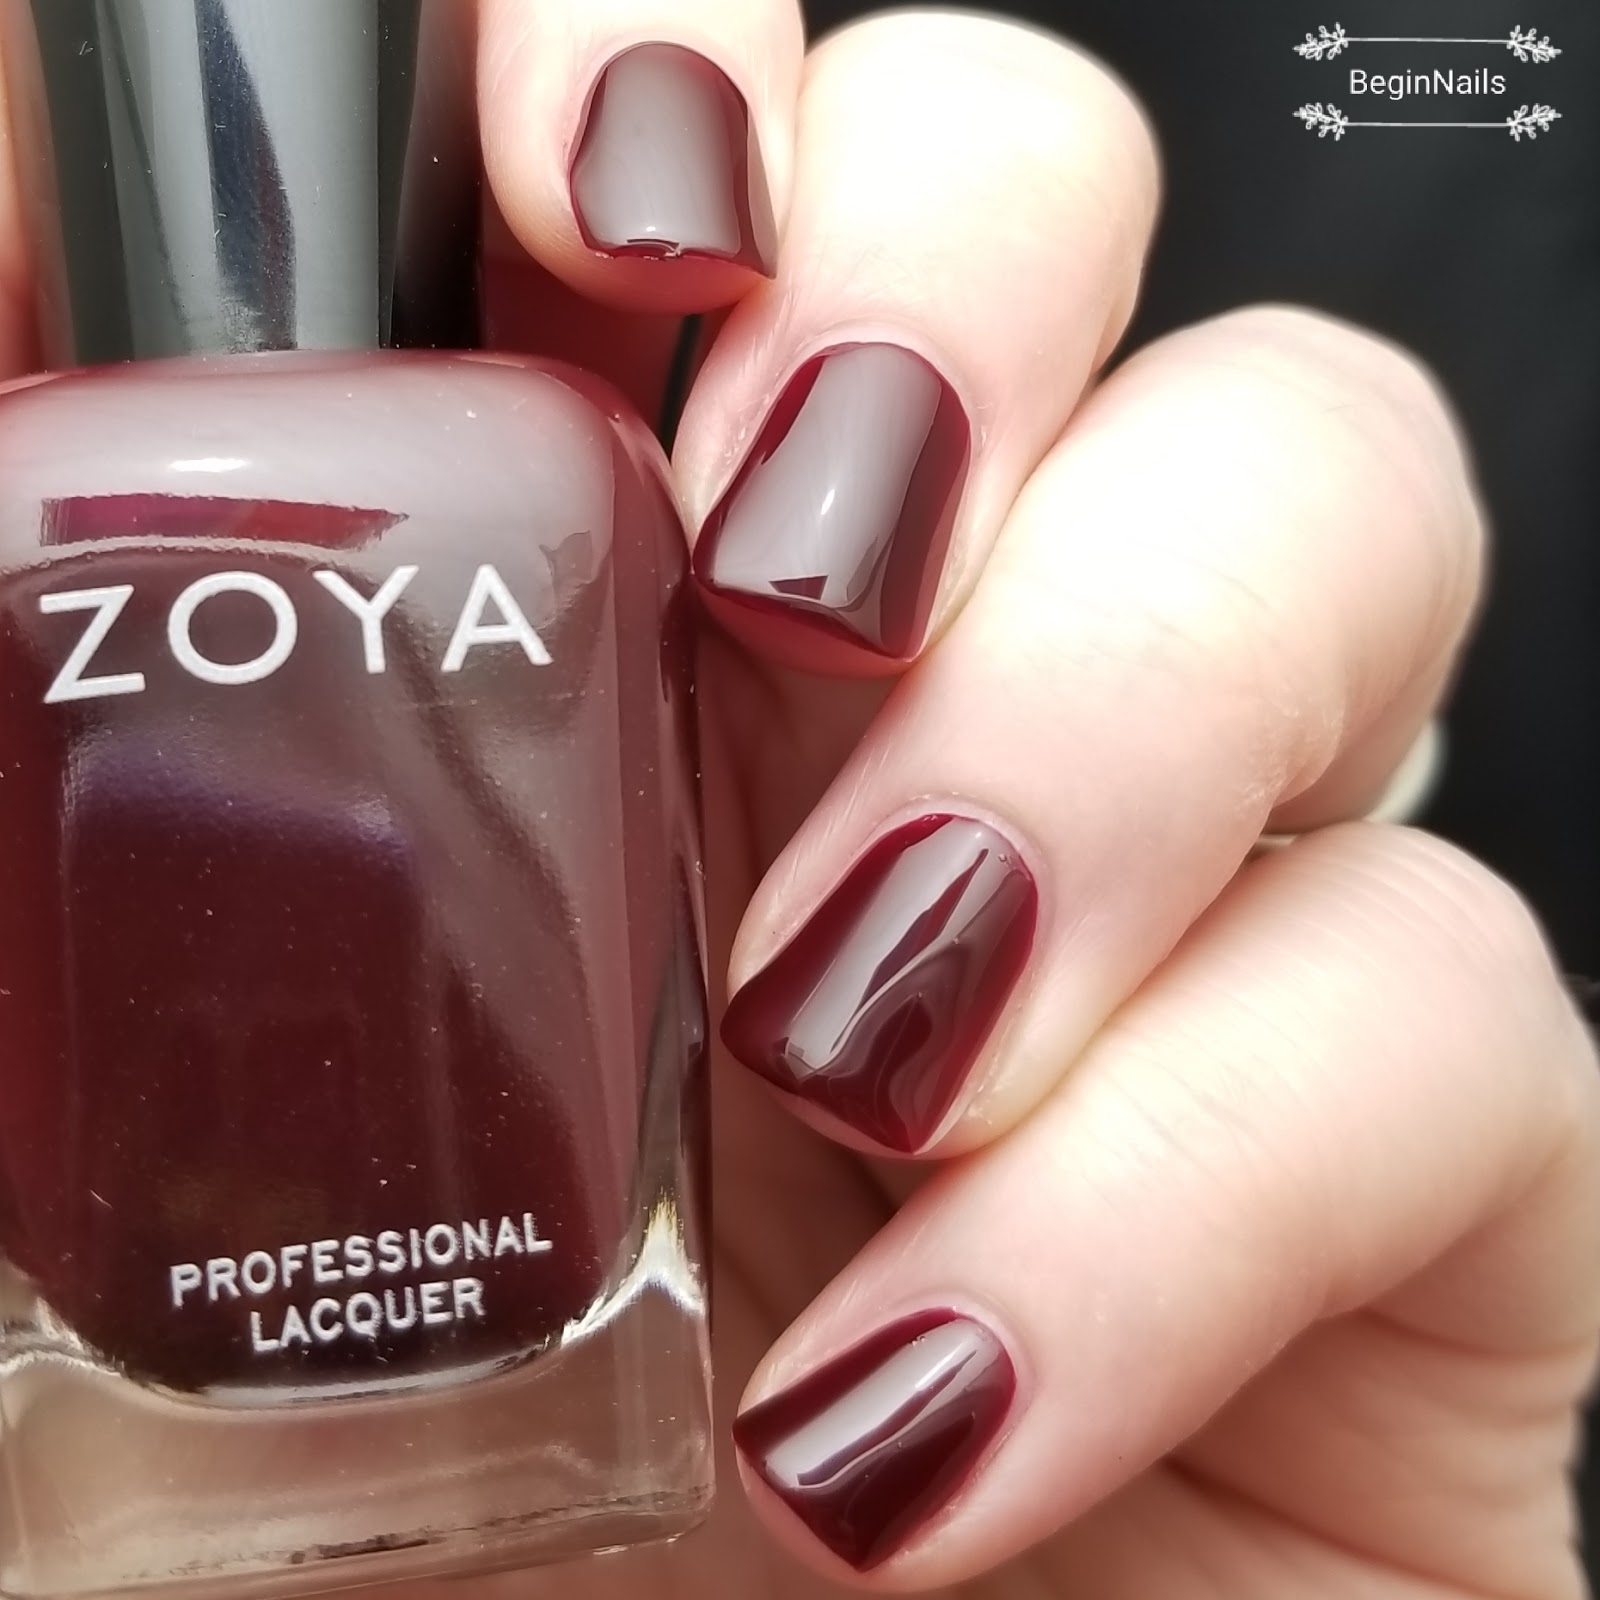 Let\'s Begin Nails: Natural Healthy Concepts - Zoya Sam Review